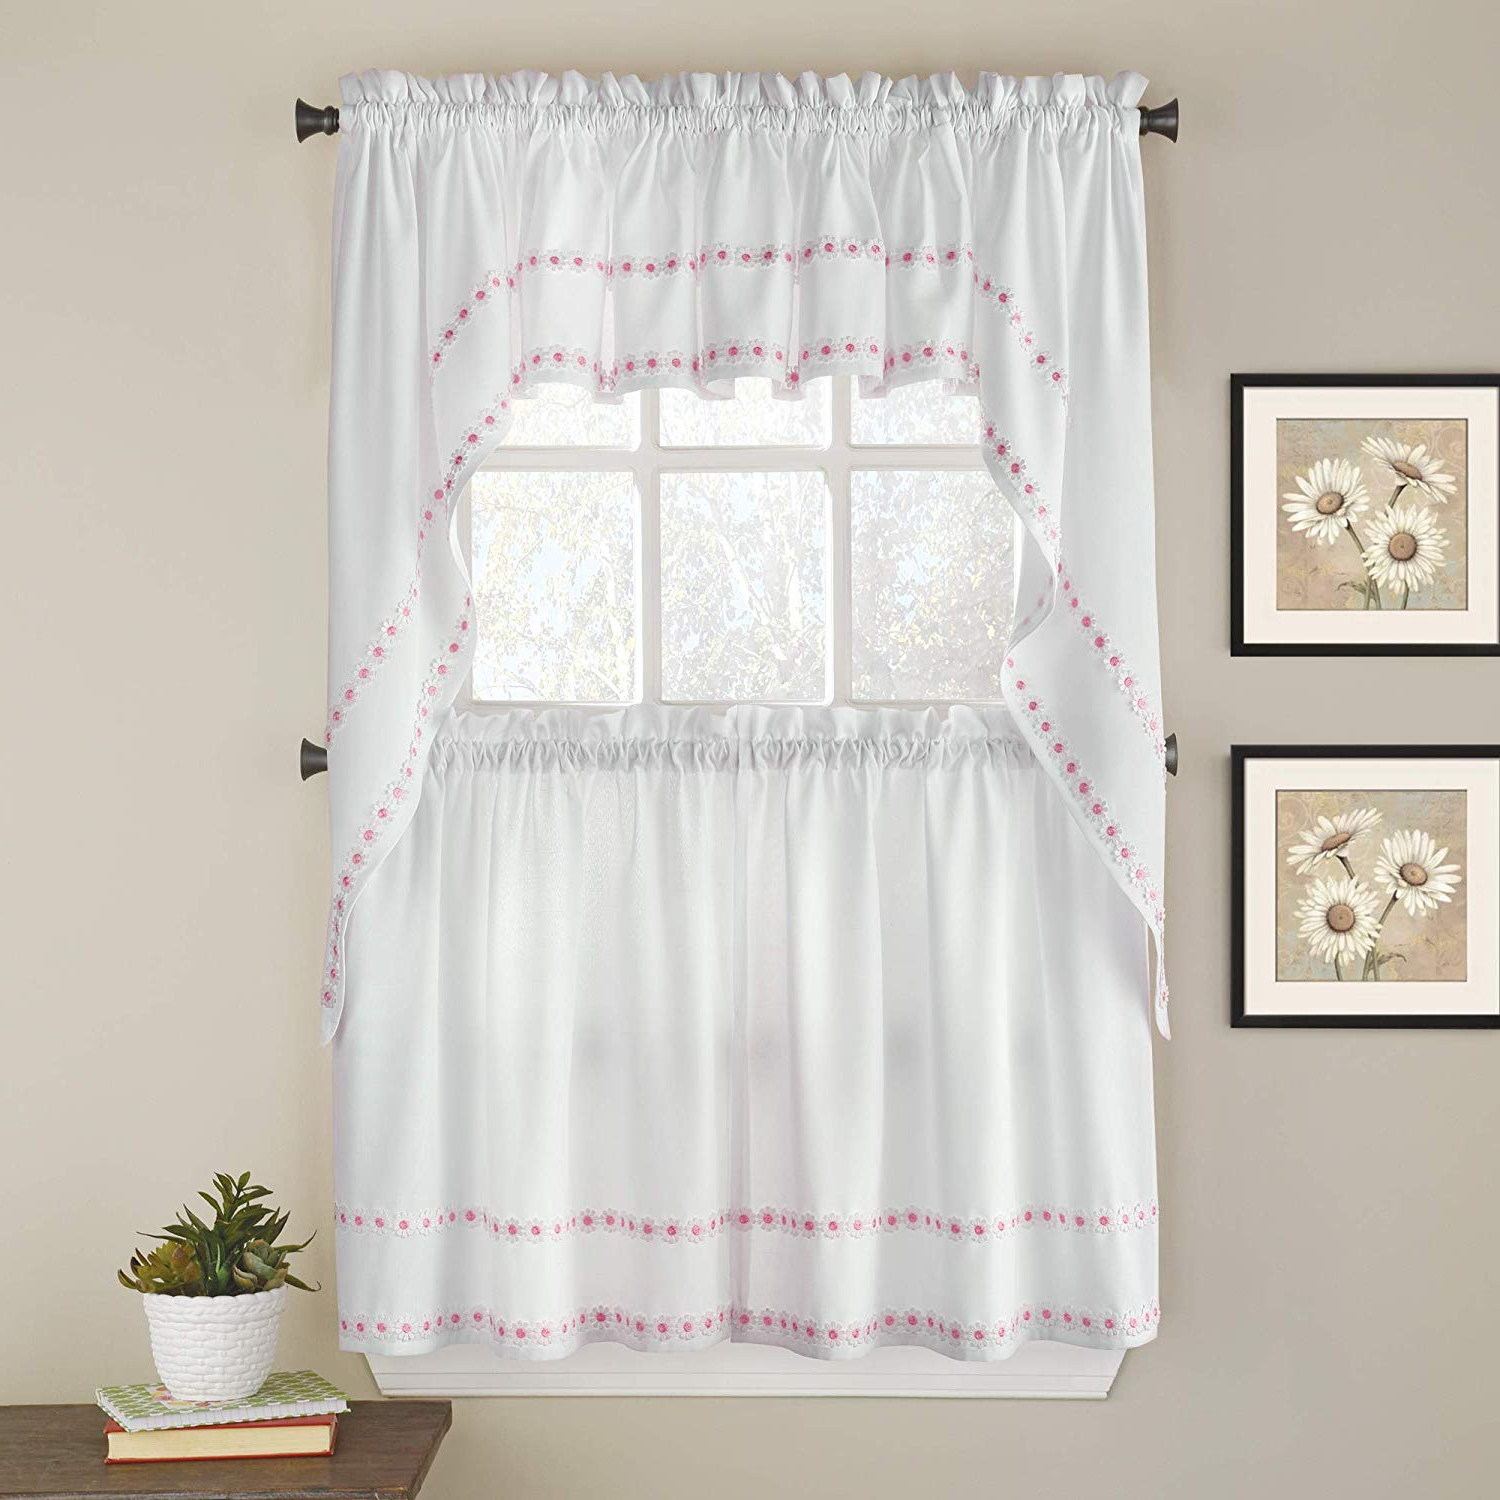 """2021 Chocolate 5 Piece Curtain Tier And Swag Sets With Regard To Sweet Home Collection Kitchen Window Curtain 5 Piece Set With Valance,  Swag, And Choice Of 24"""" Or 36"""" Tier Pair Daisy Mae Pink (View 2 of 20)"""